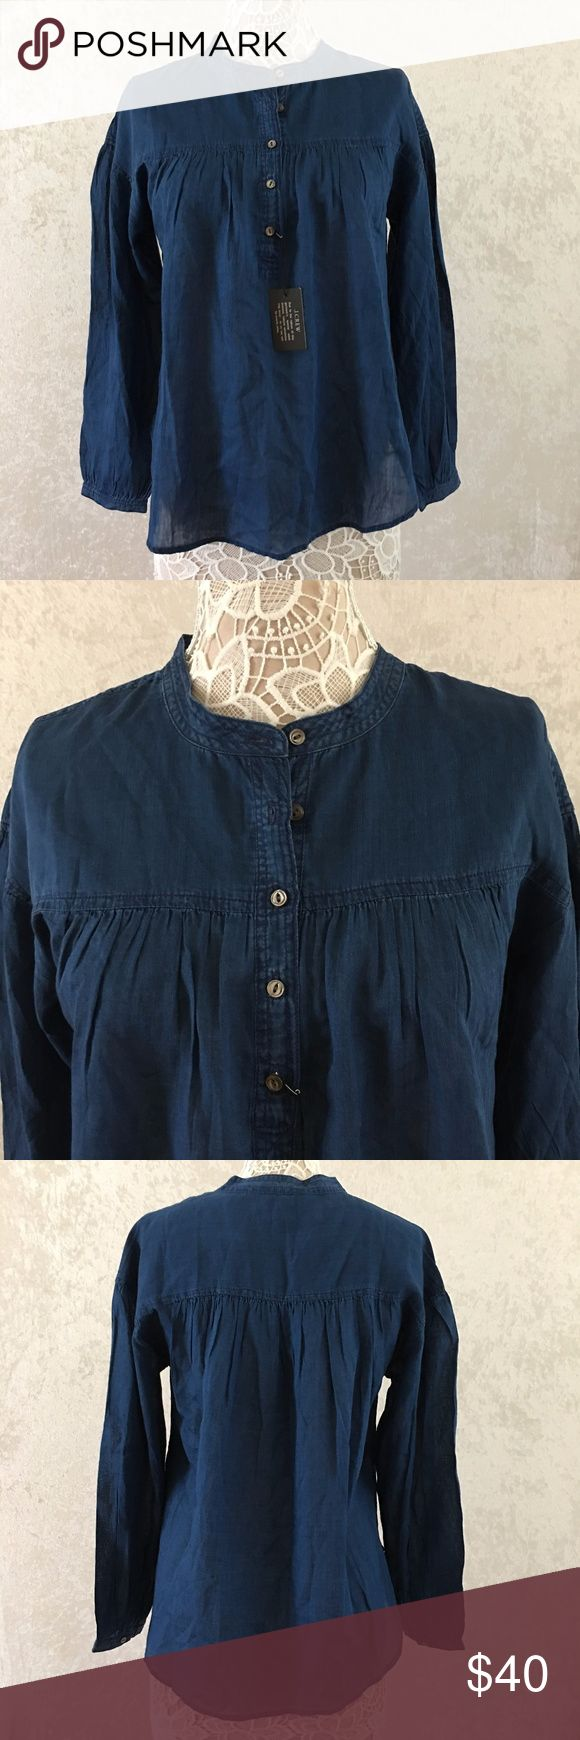 NWT J Crew Chambray Cotton Top Blouse Size 10 J Crew Women's Chambray Cotton Top Blouse Size 10 J. Crew Factory Tops Blouses